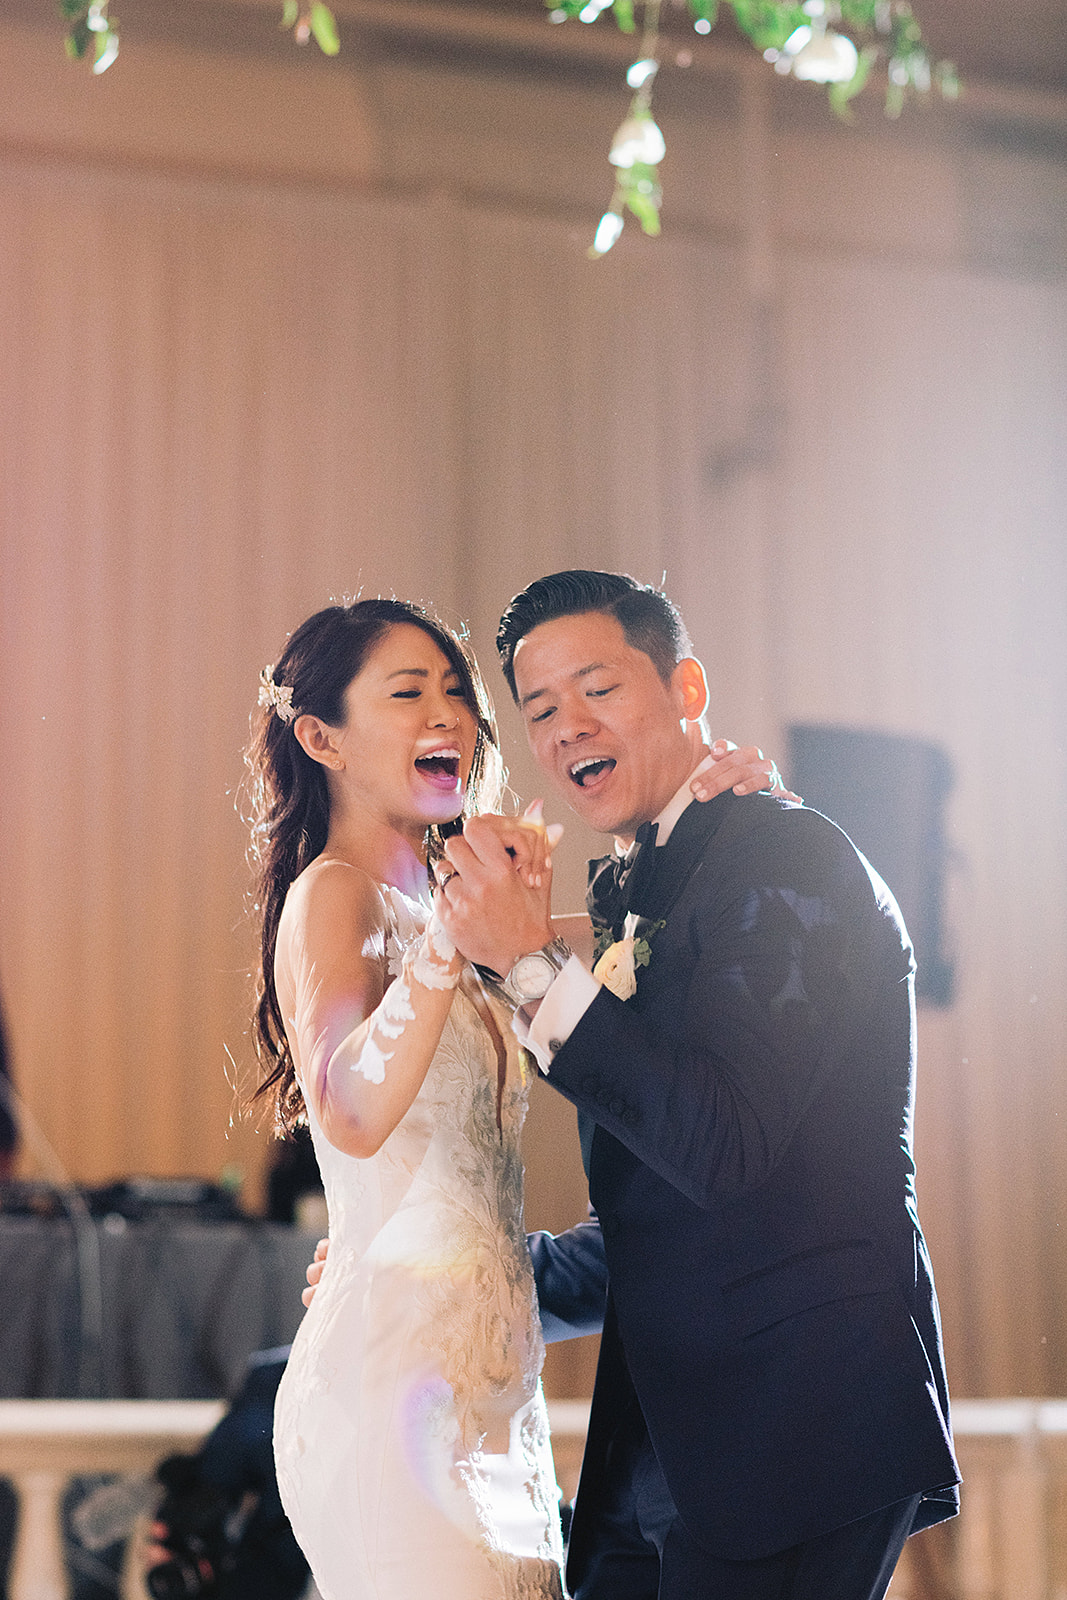 For Michelle and Soo's Modern Luxe wedding in the heart of downtown Houston, Spell Events…first dance fireworks